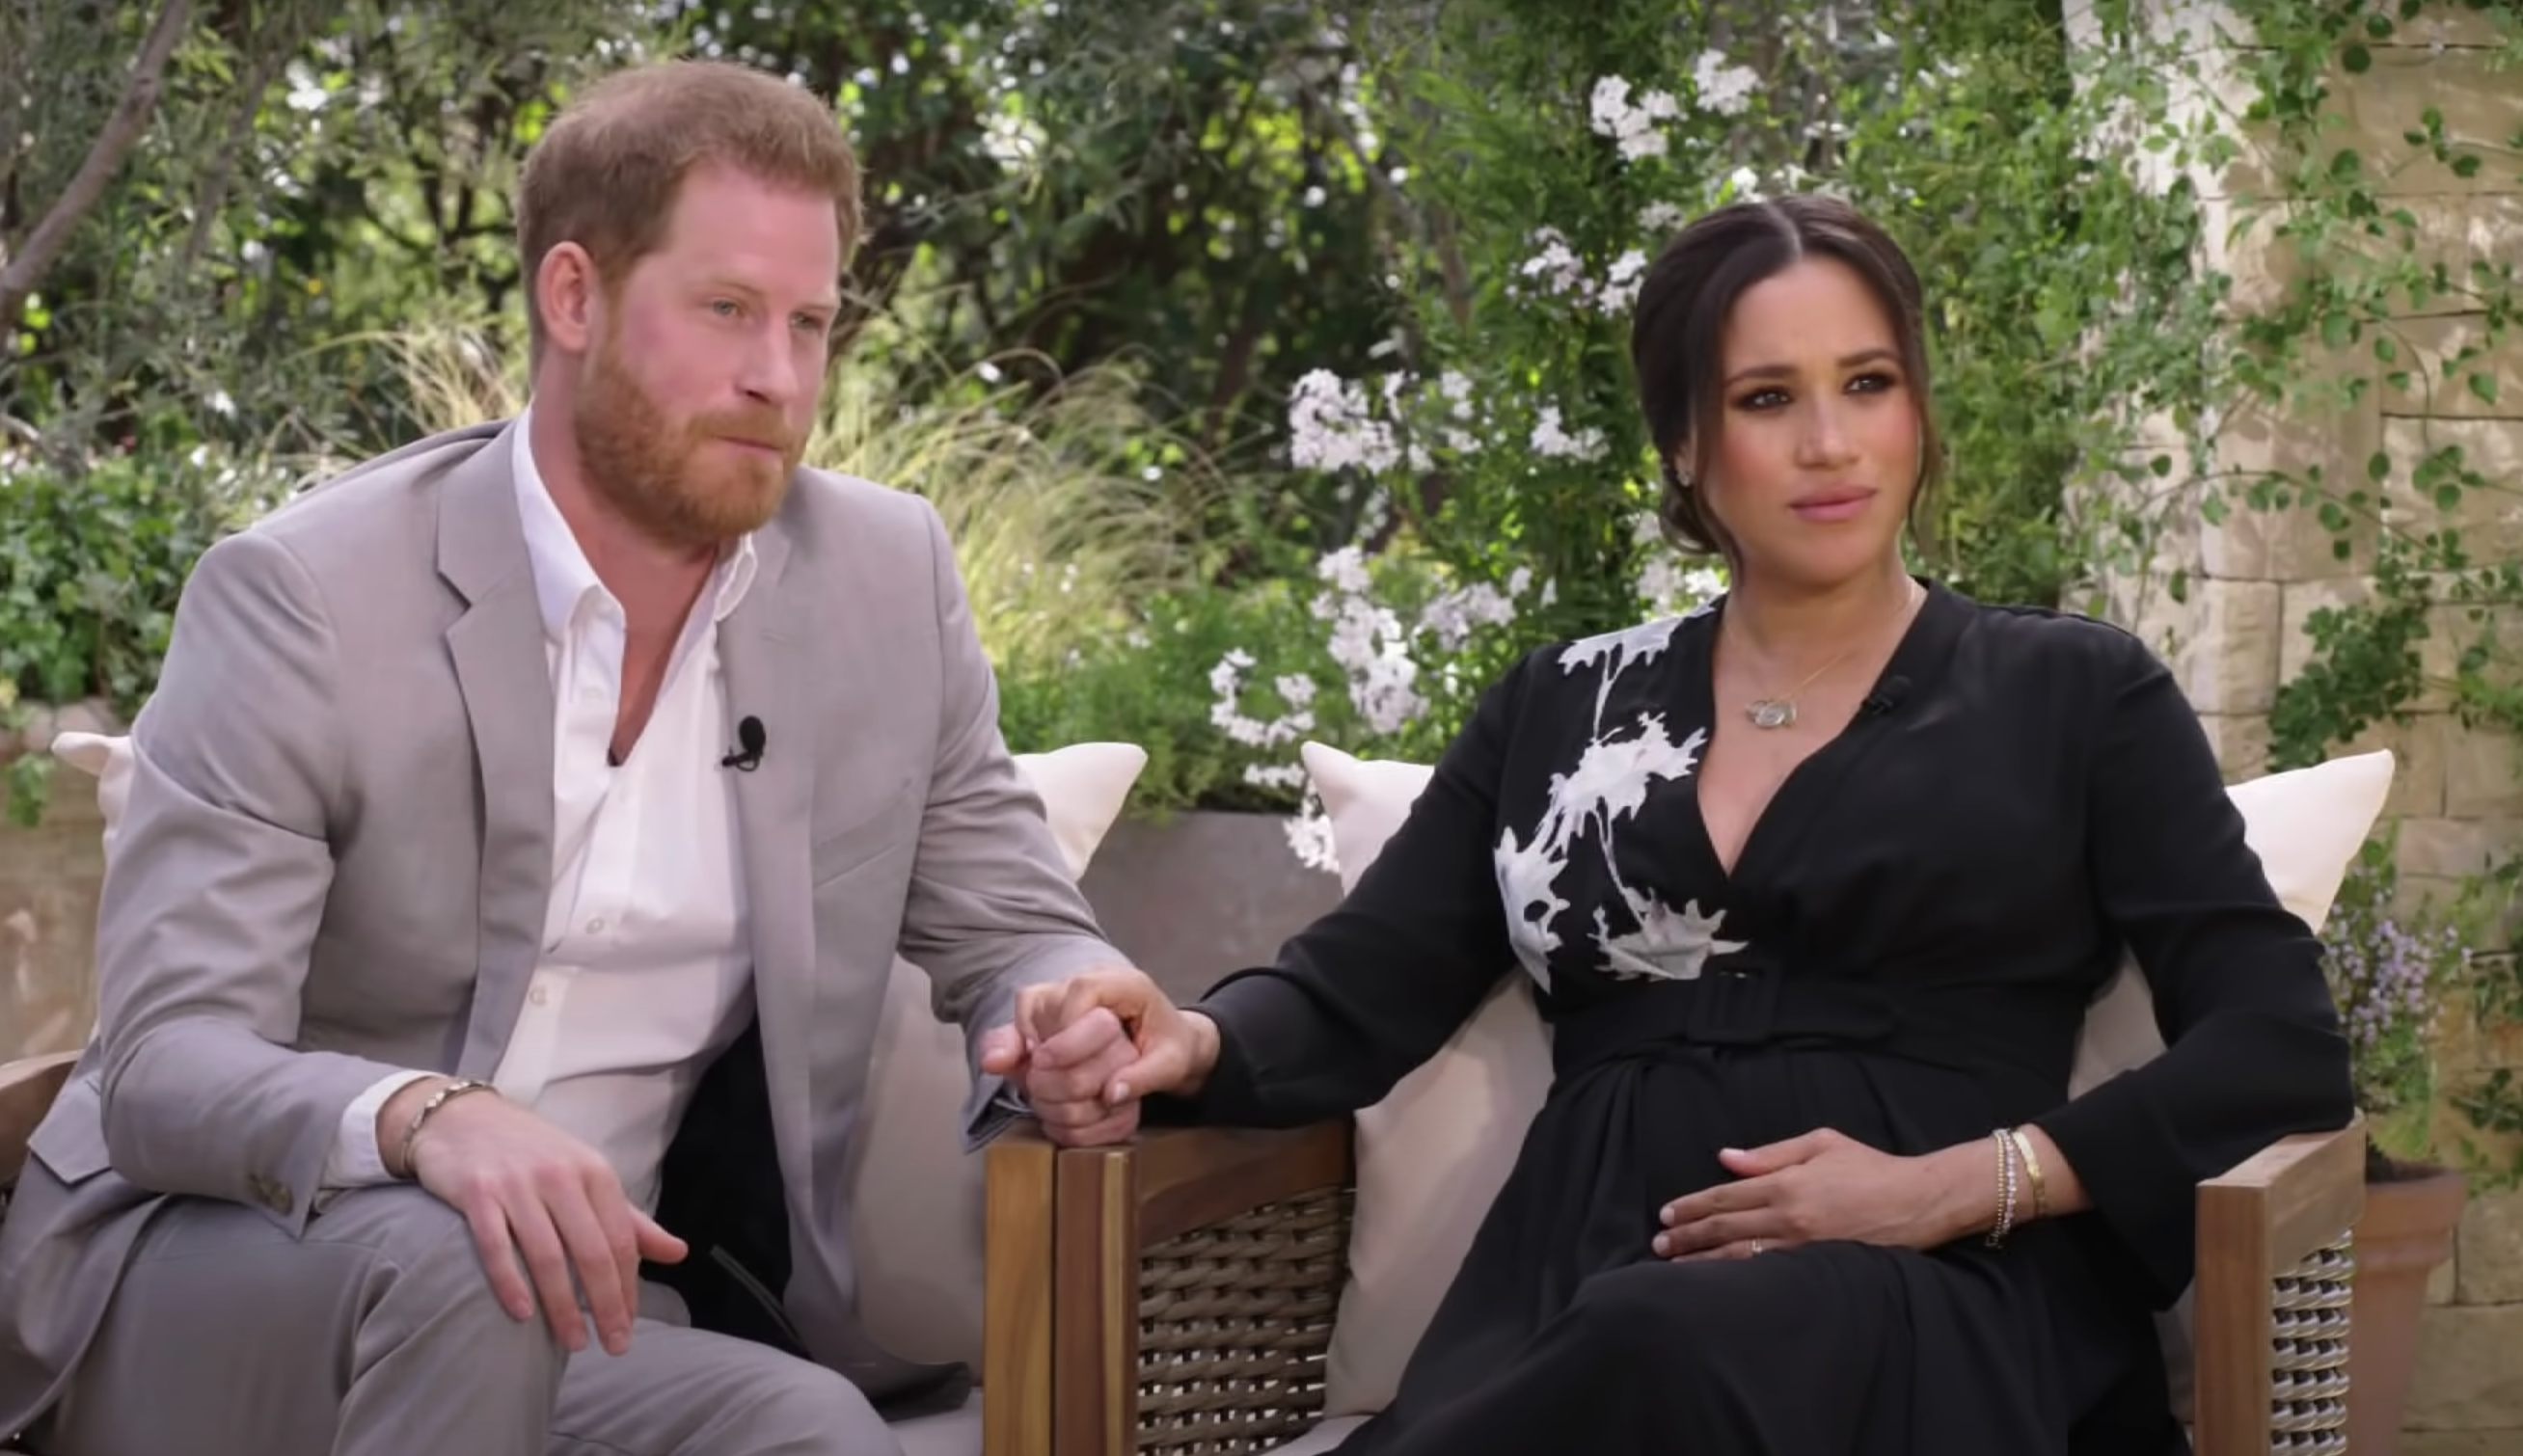 Meghan Markle sitting with Prince harry and oprah winfrey for the 2021 interview